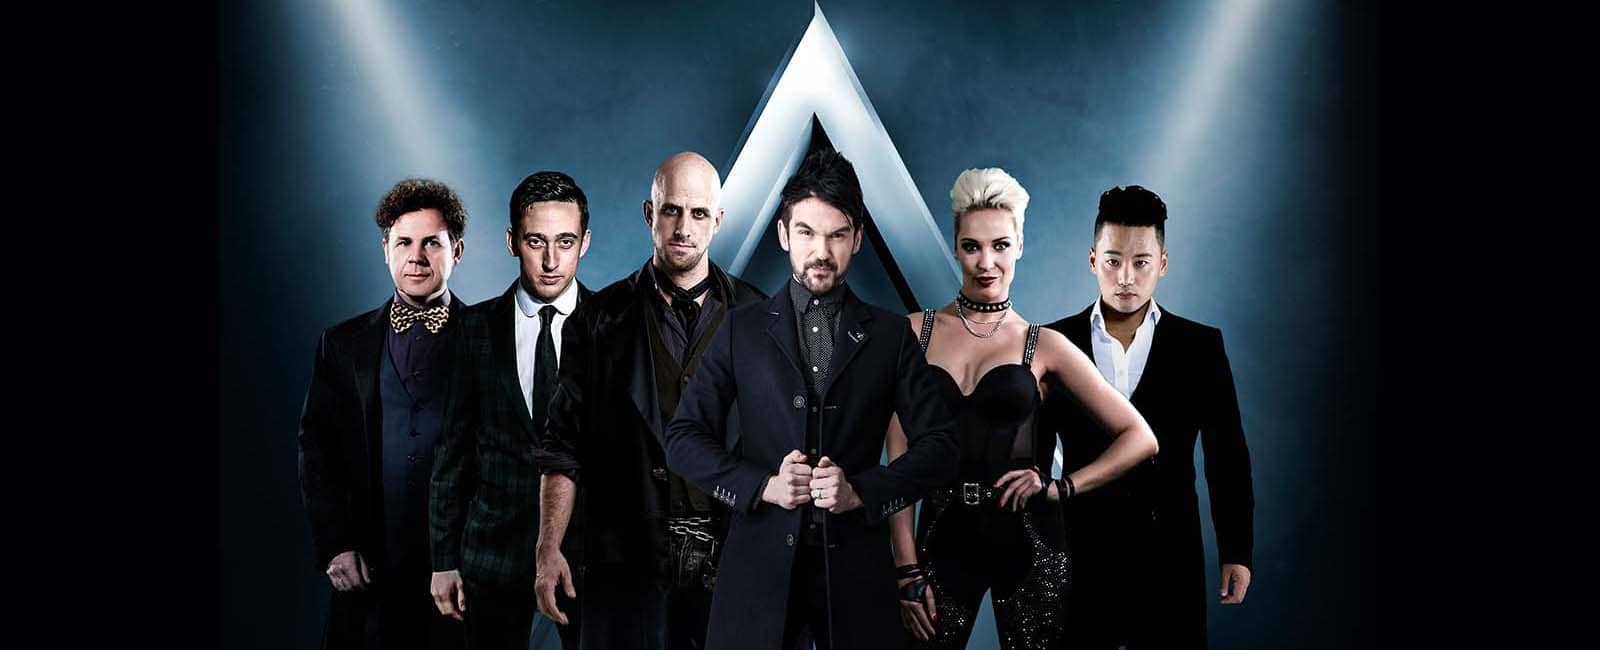 The Illusionists Tickets - Denver Center for the Performing Arts